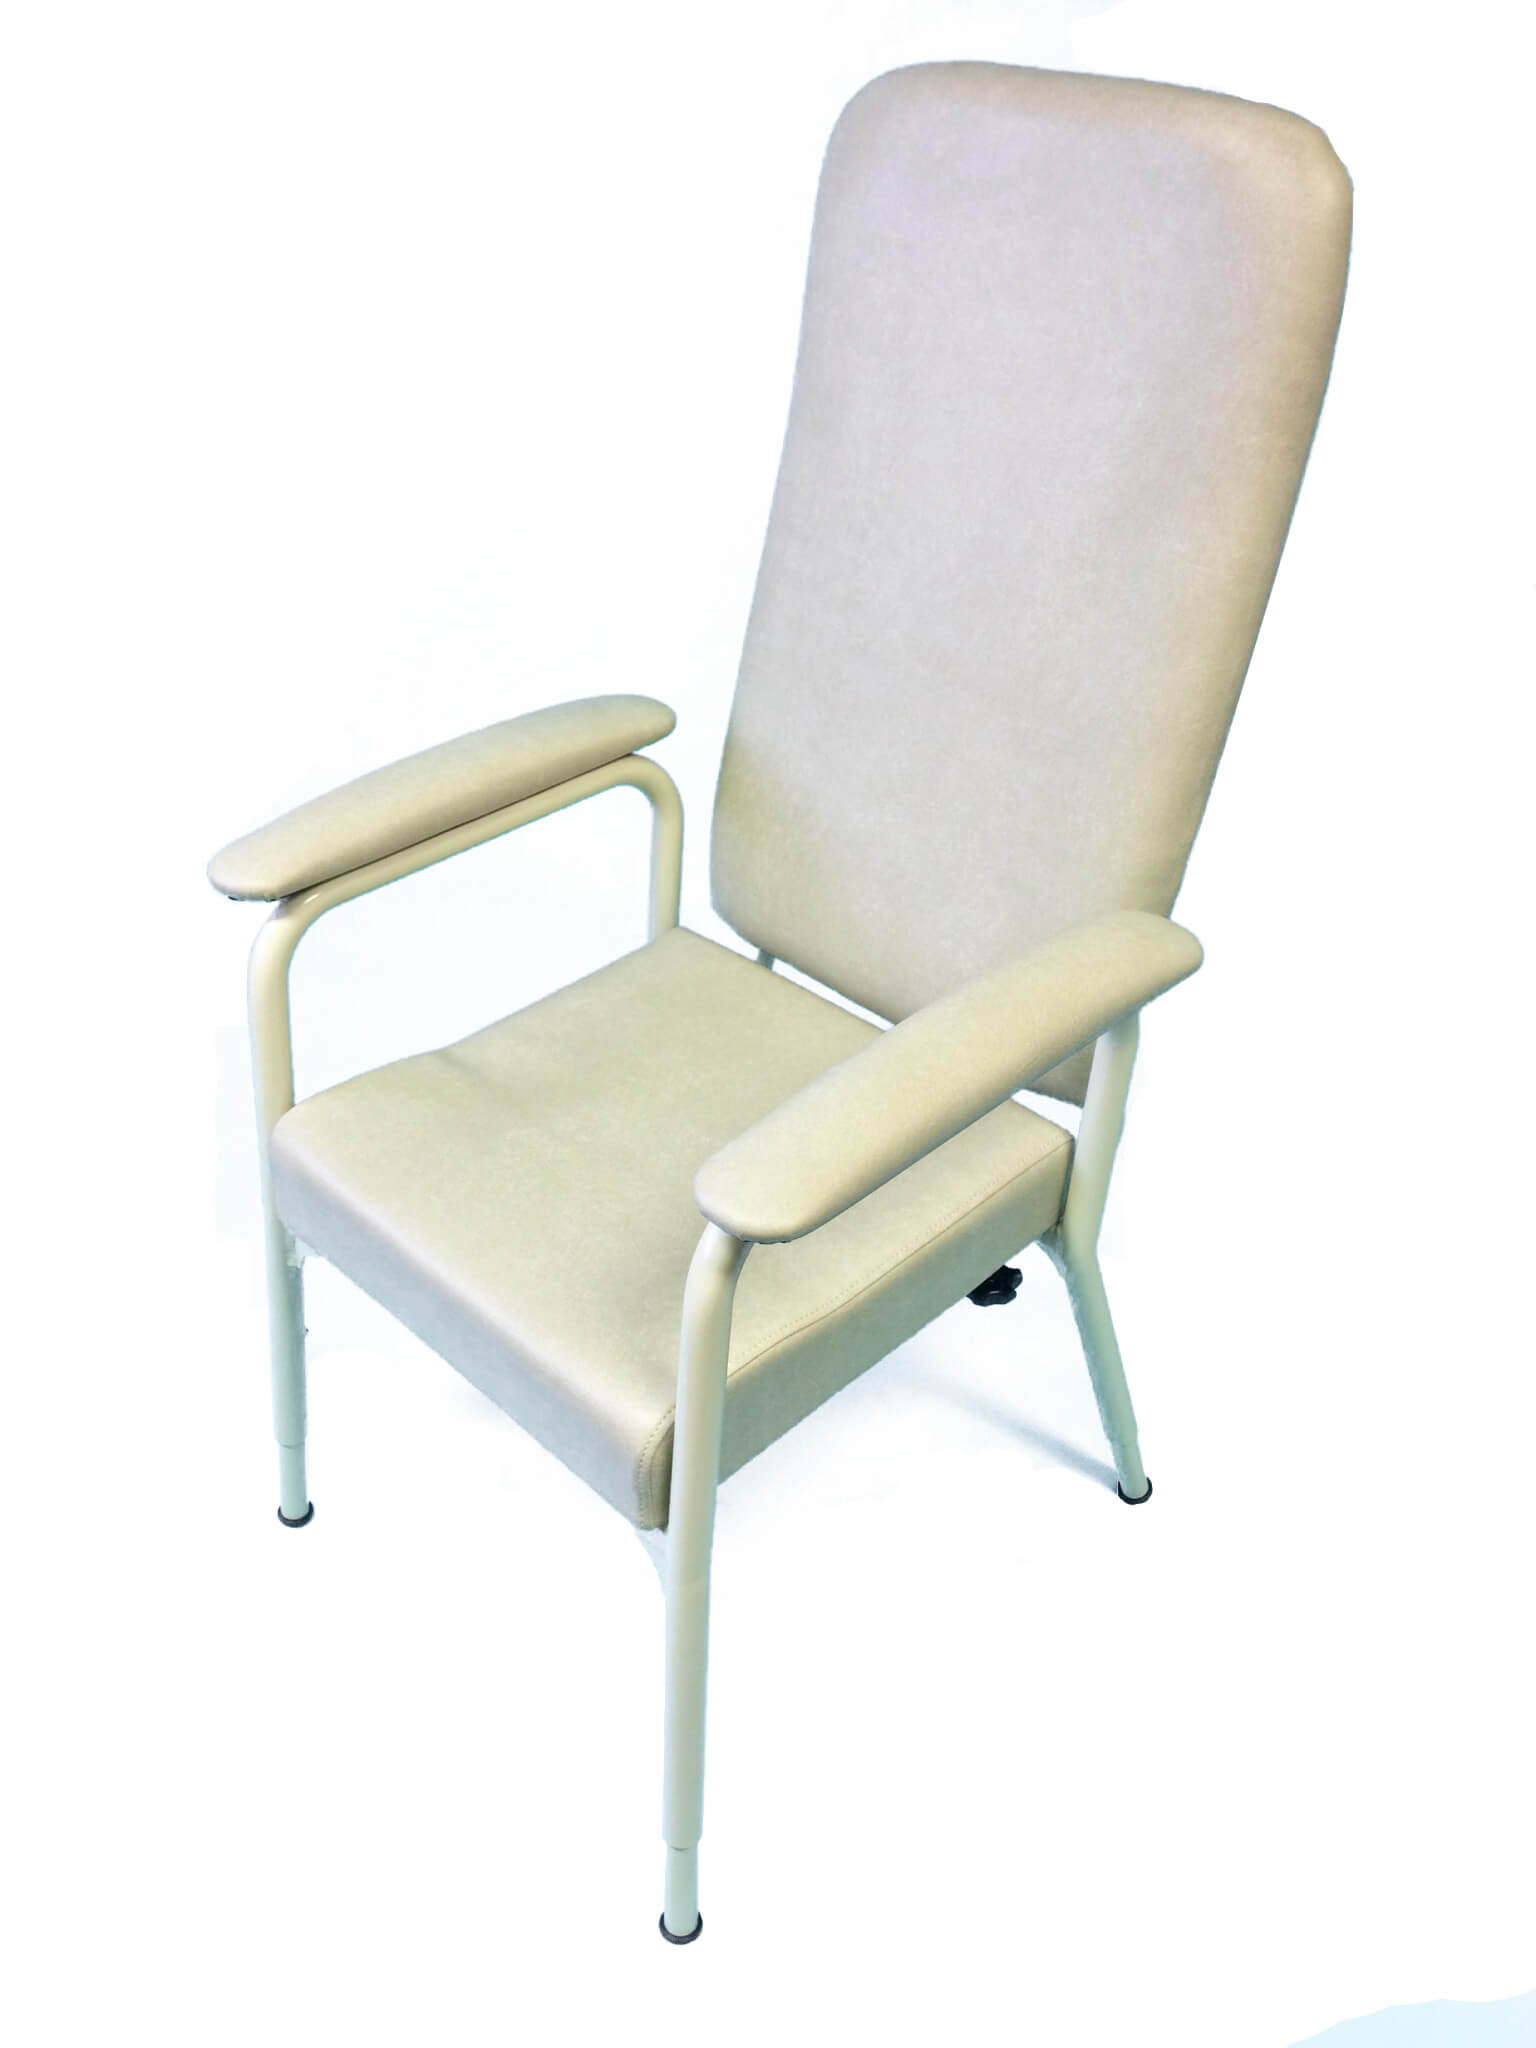 Back Supports For Chairs High Back Support Chair Able Medilink